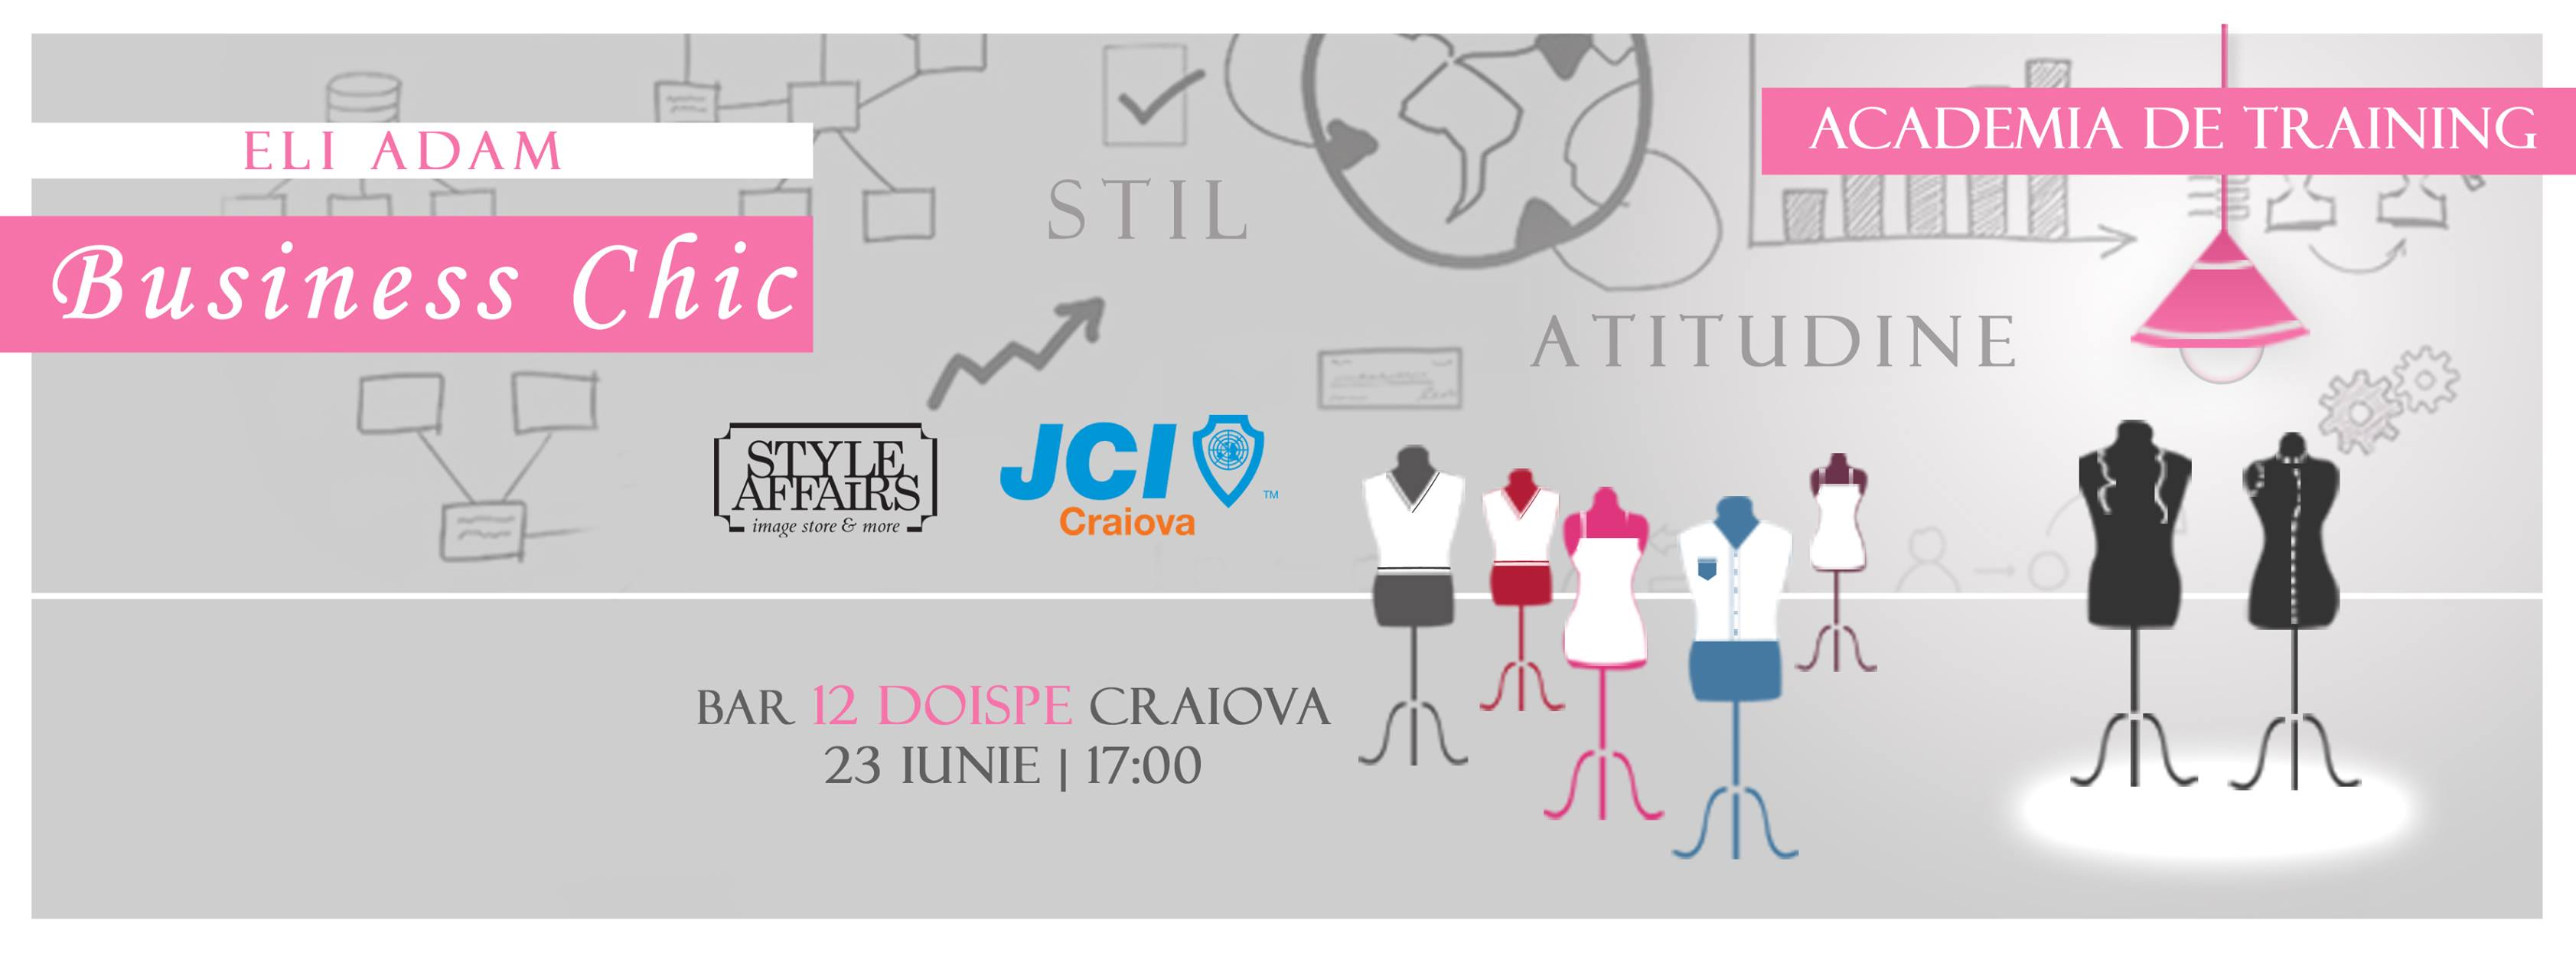 business-chic-jci-craiova